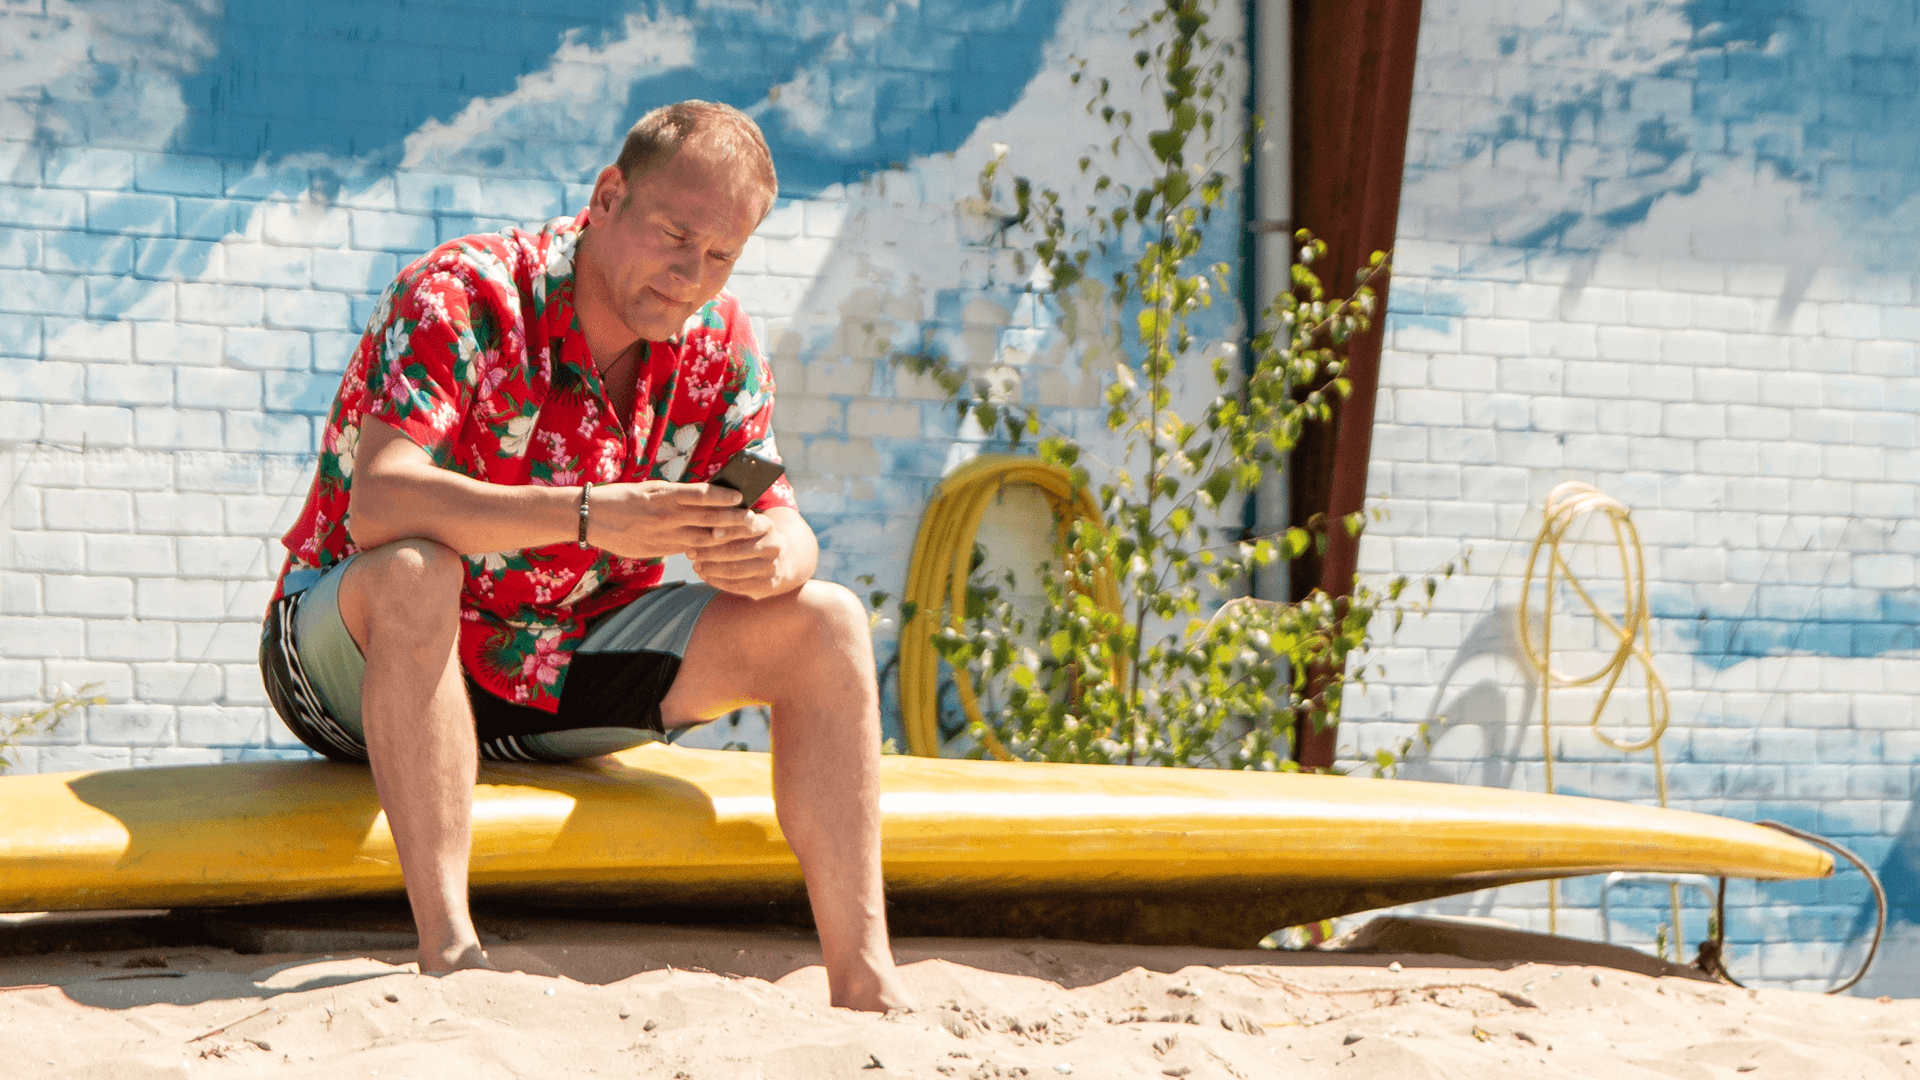 1920x1080 Chris sitting on a surfboard